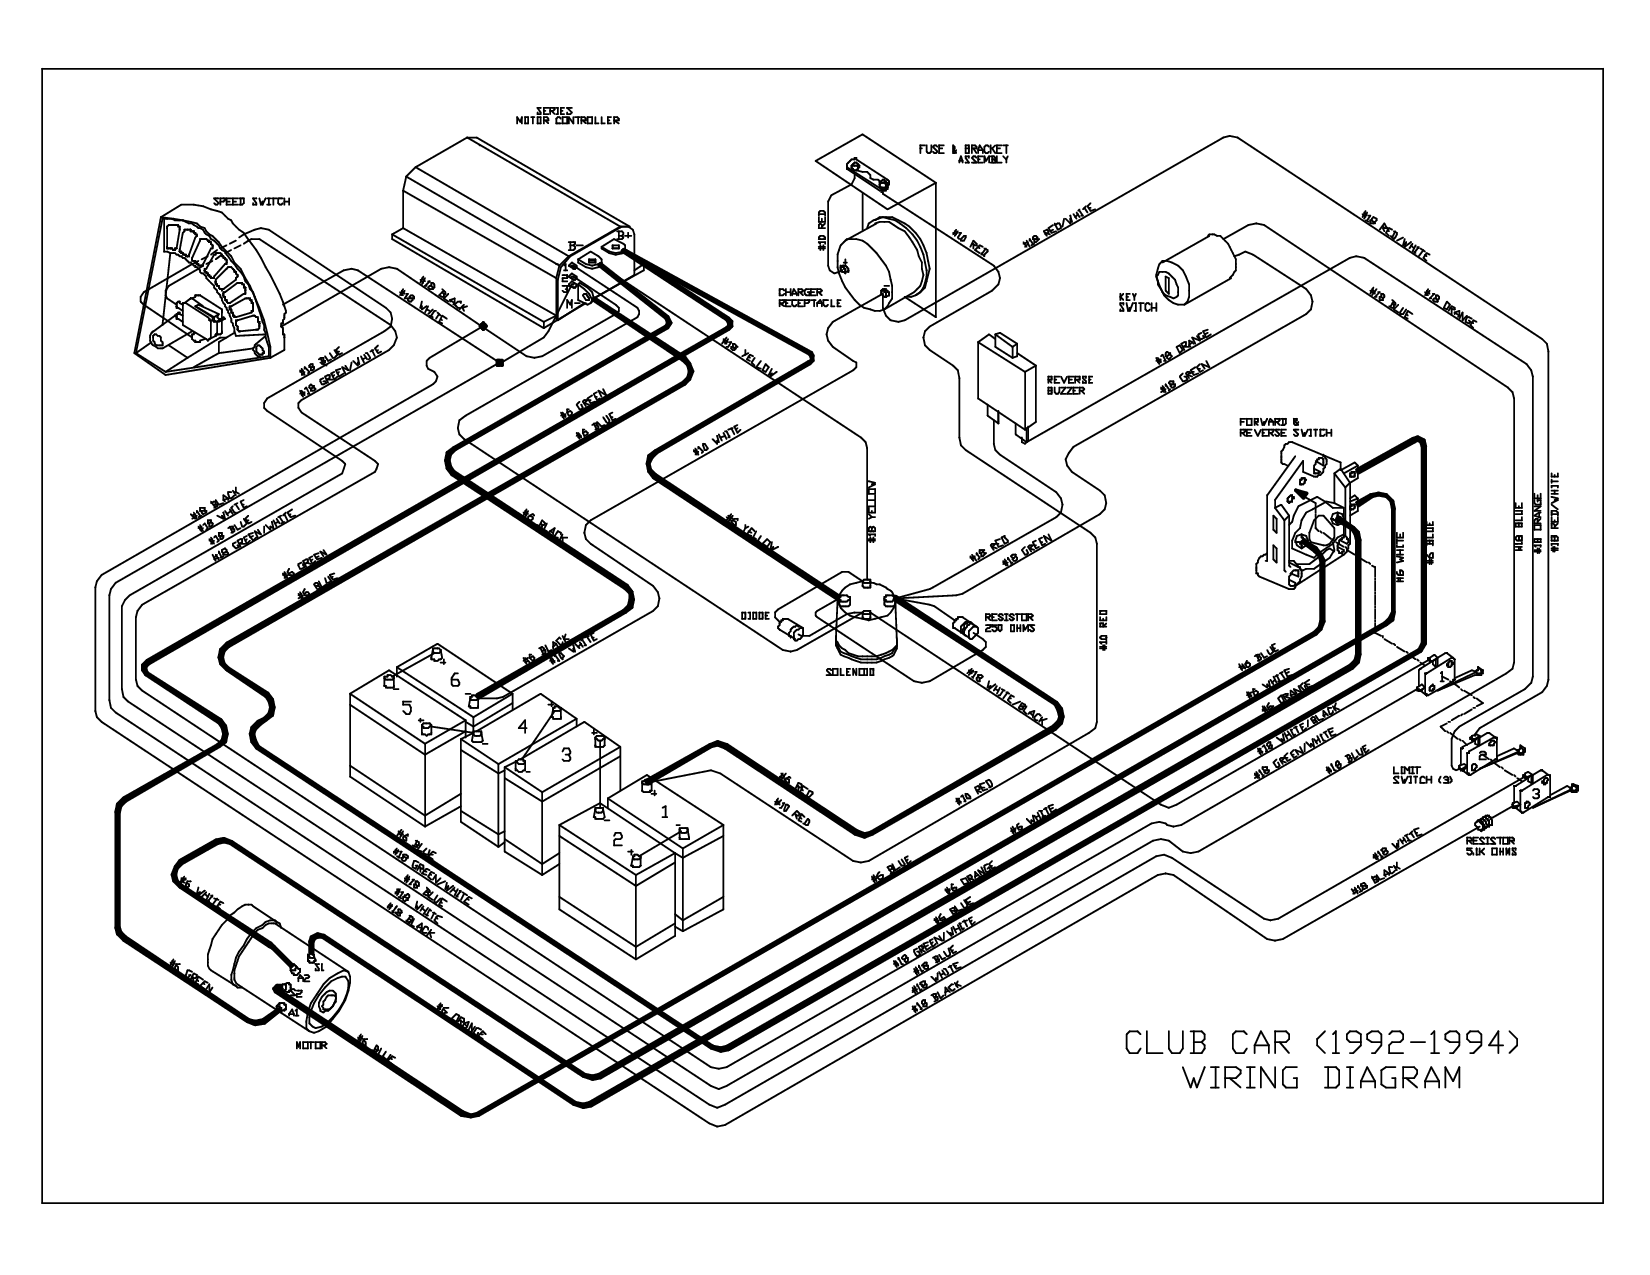 1992 club car 36 volt wiring diagram